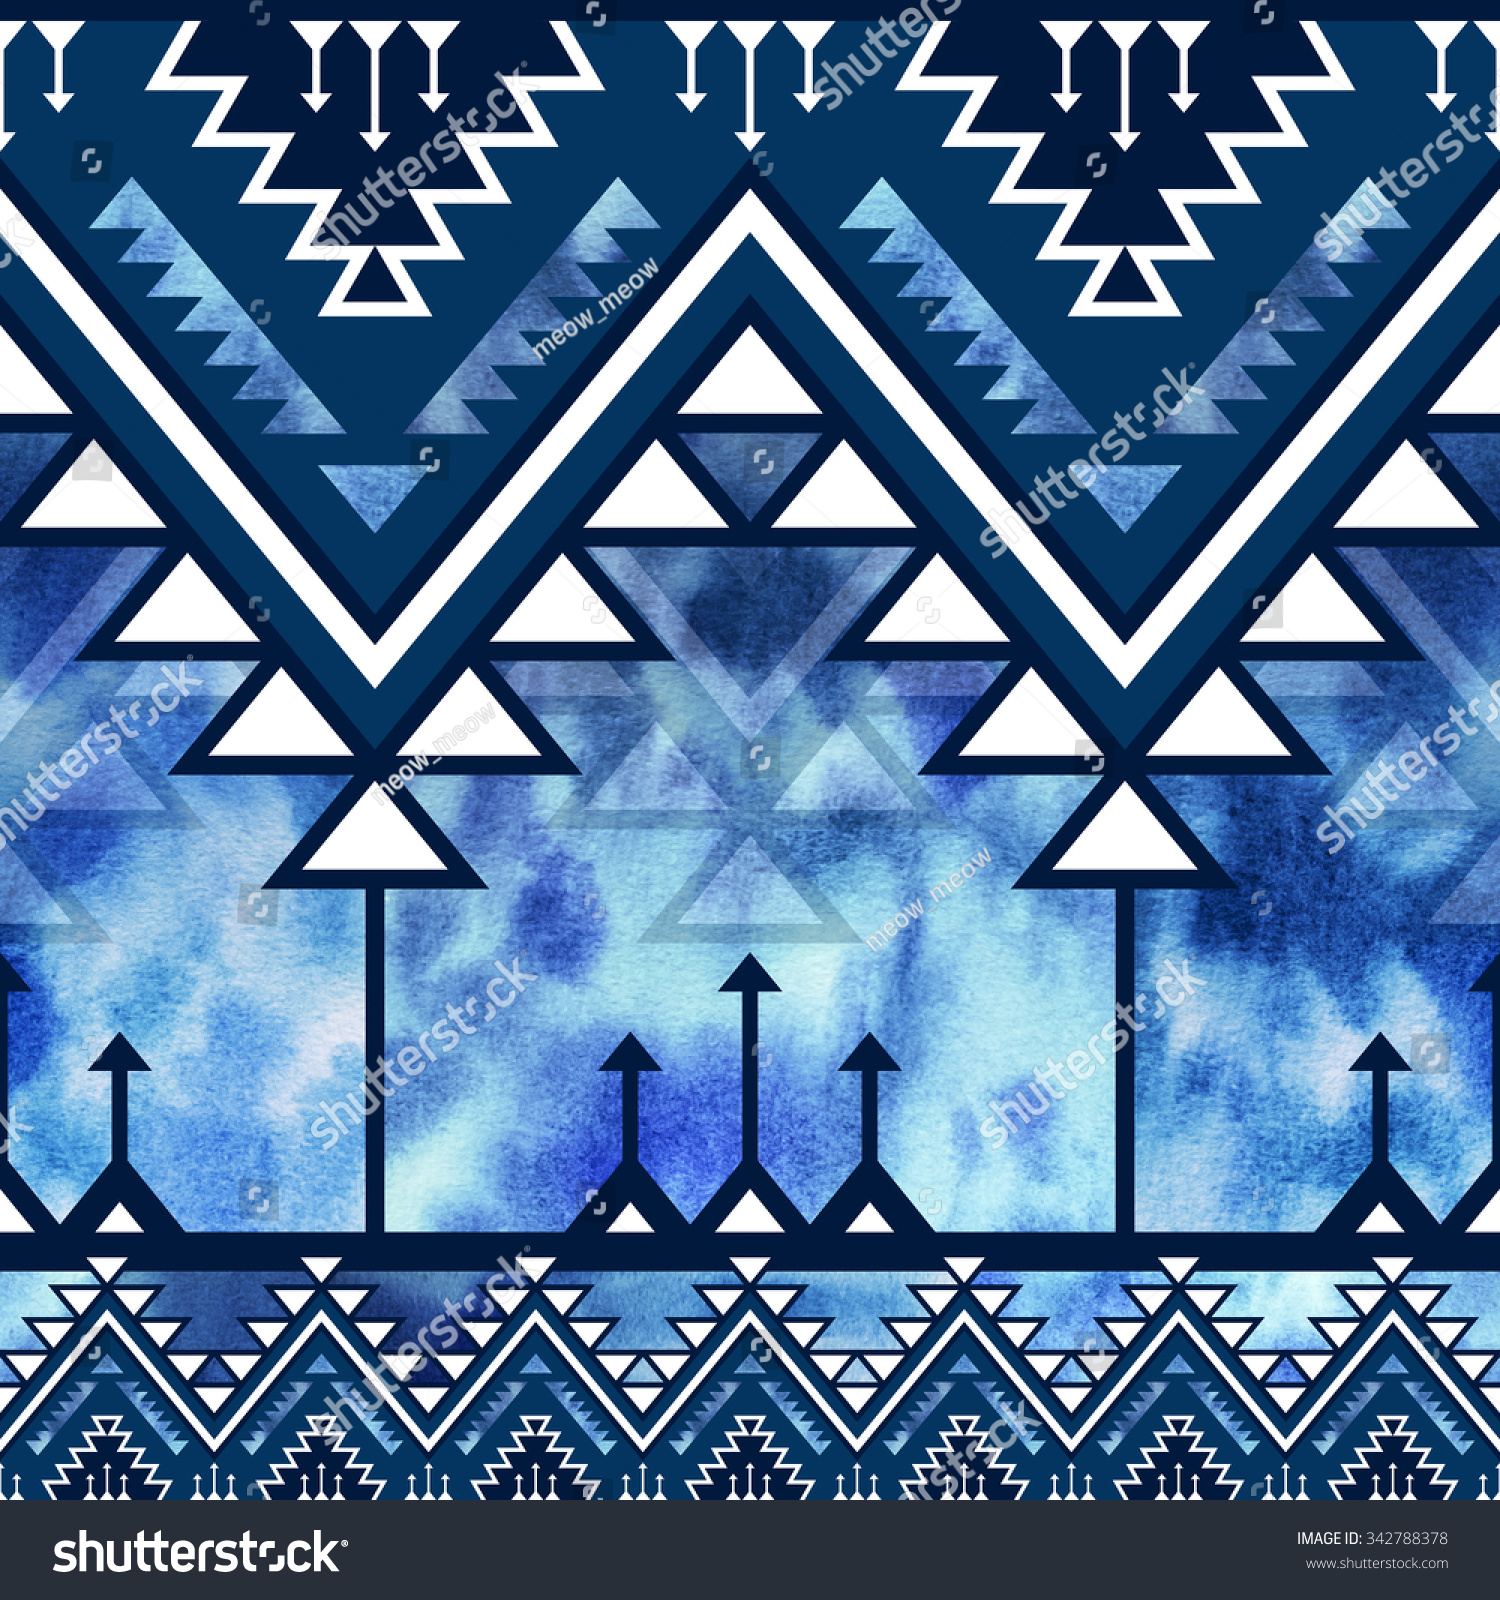 Blue Tribal Wallpapers: Blue Tribal Navajo Seamless Pattern Watercolor Stock